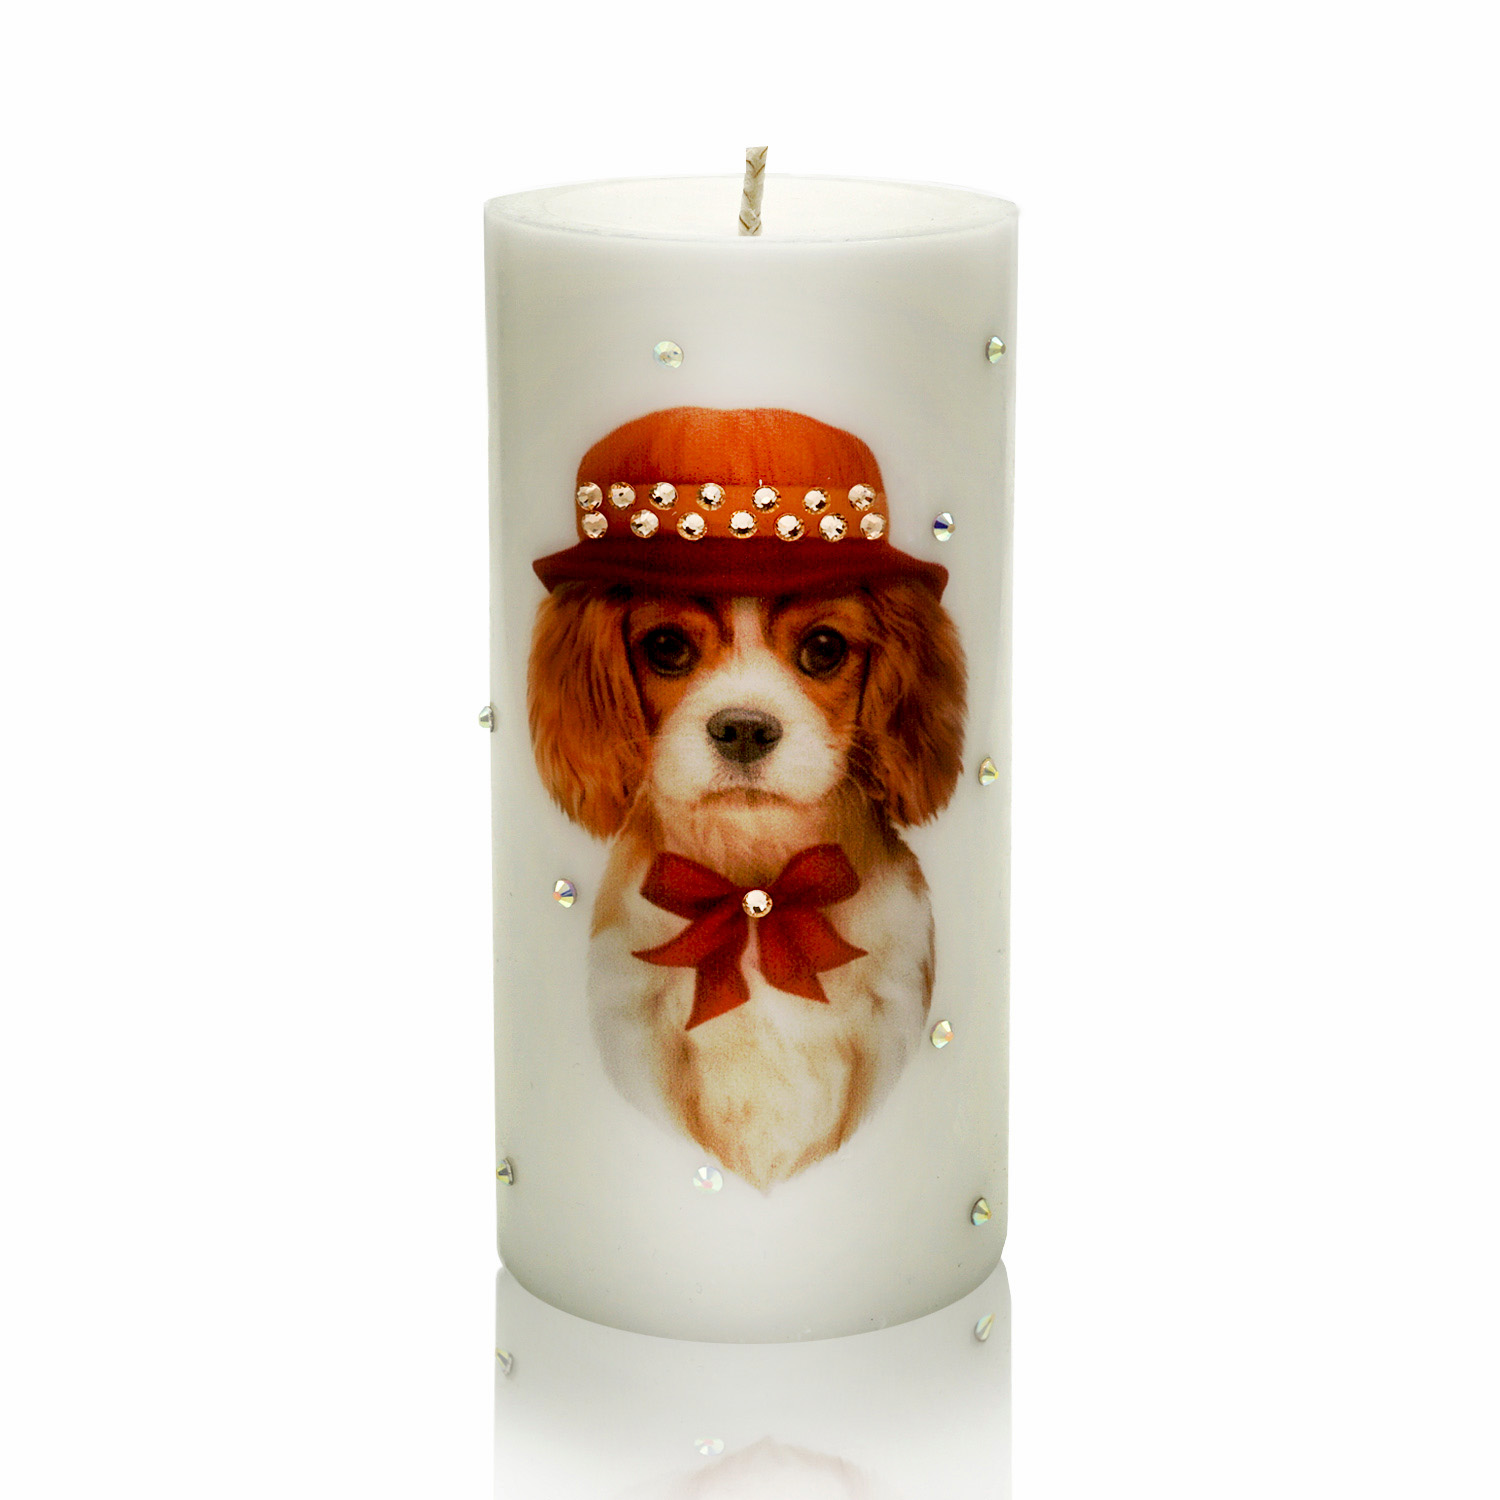 Luxury New Year of the Dog Pillar Candle – Cavalier King Charles Spaniel in Orange Hat and a Bow Gift Candle Hand-printed with Rhinestones